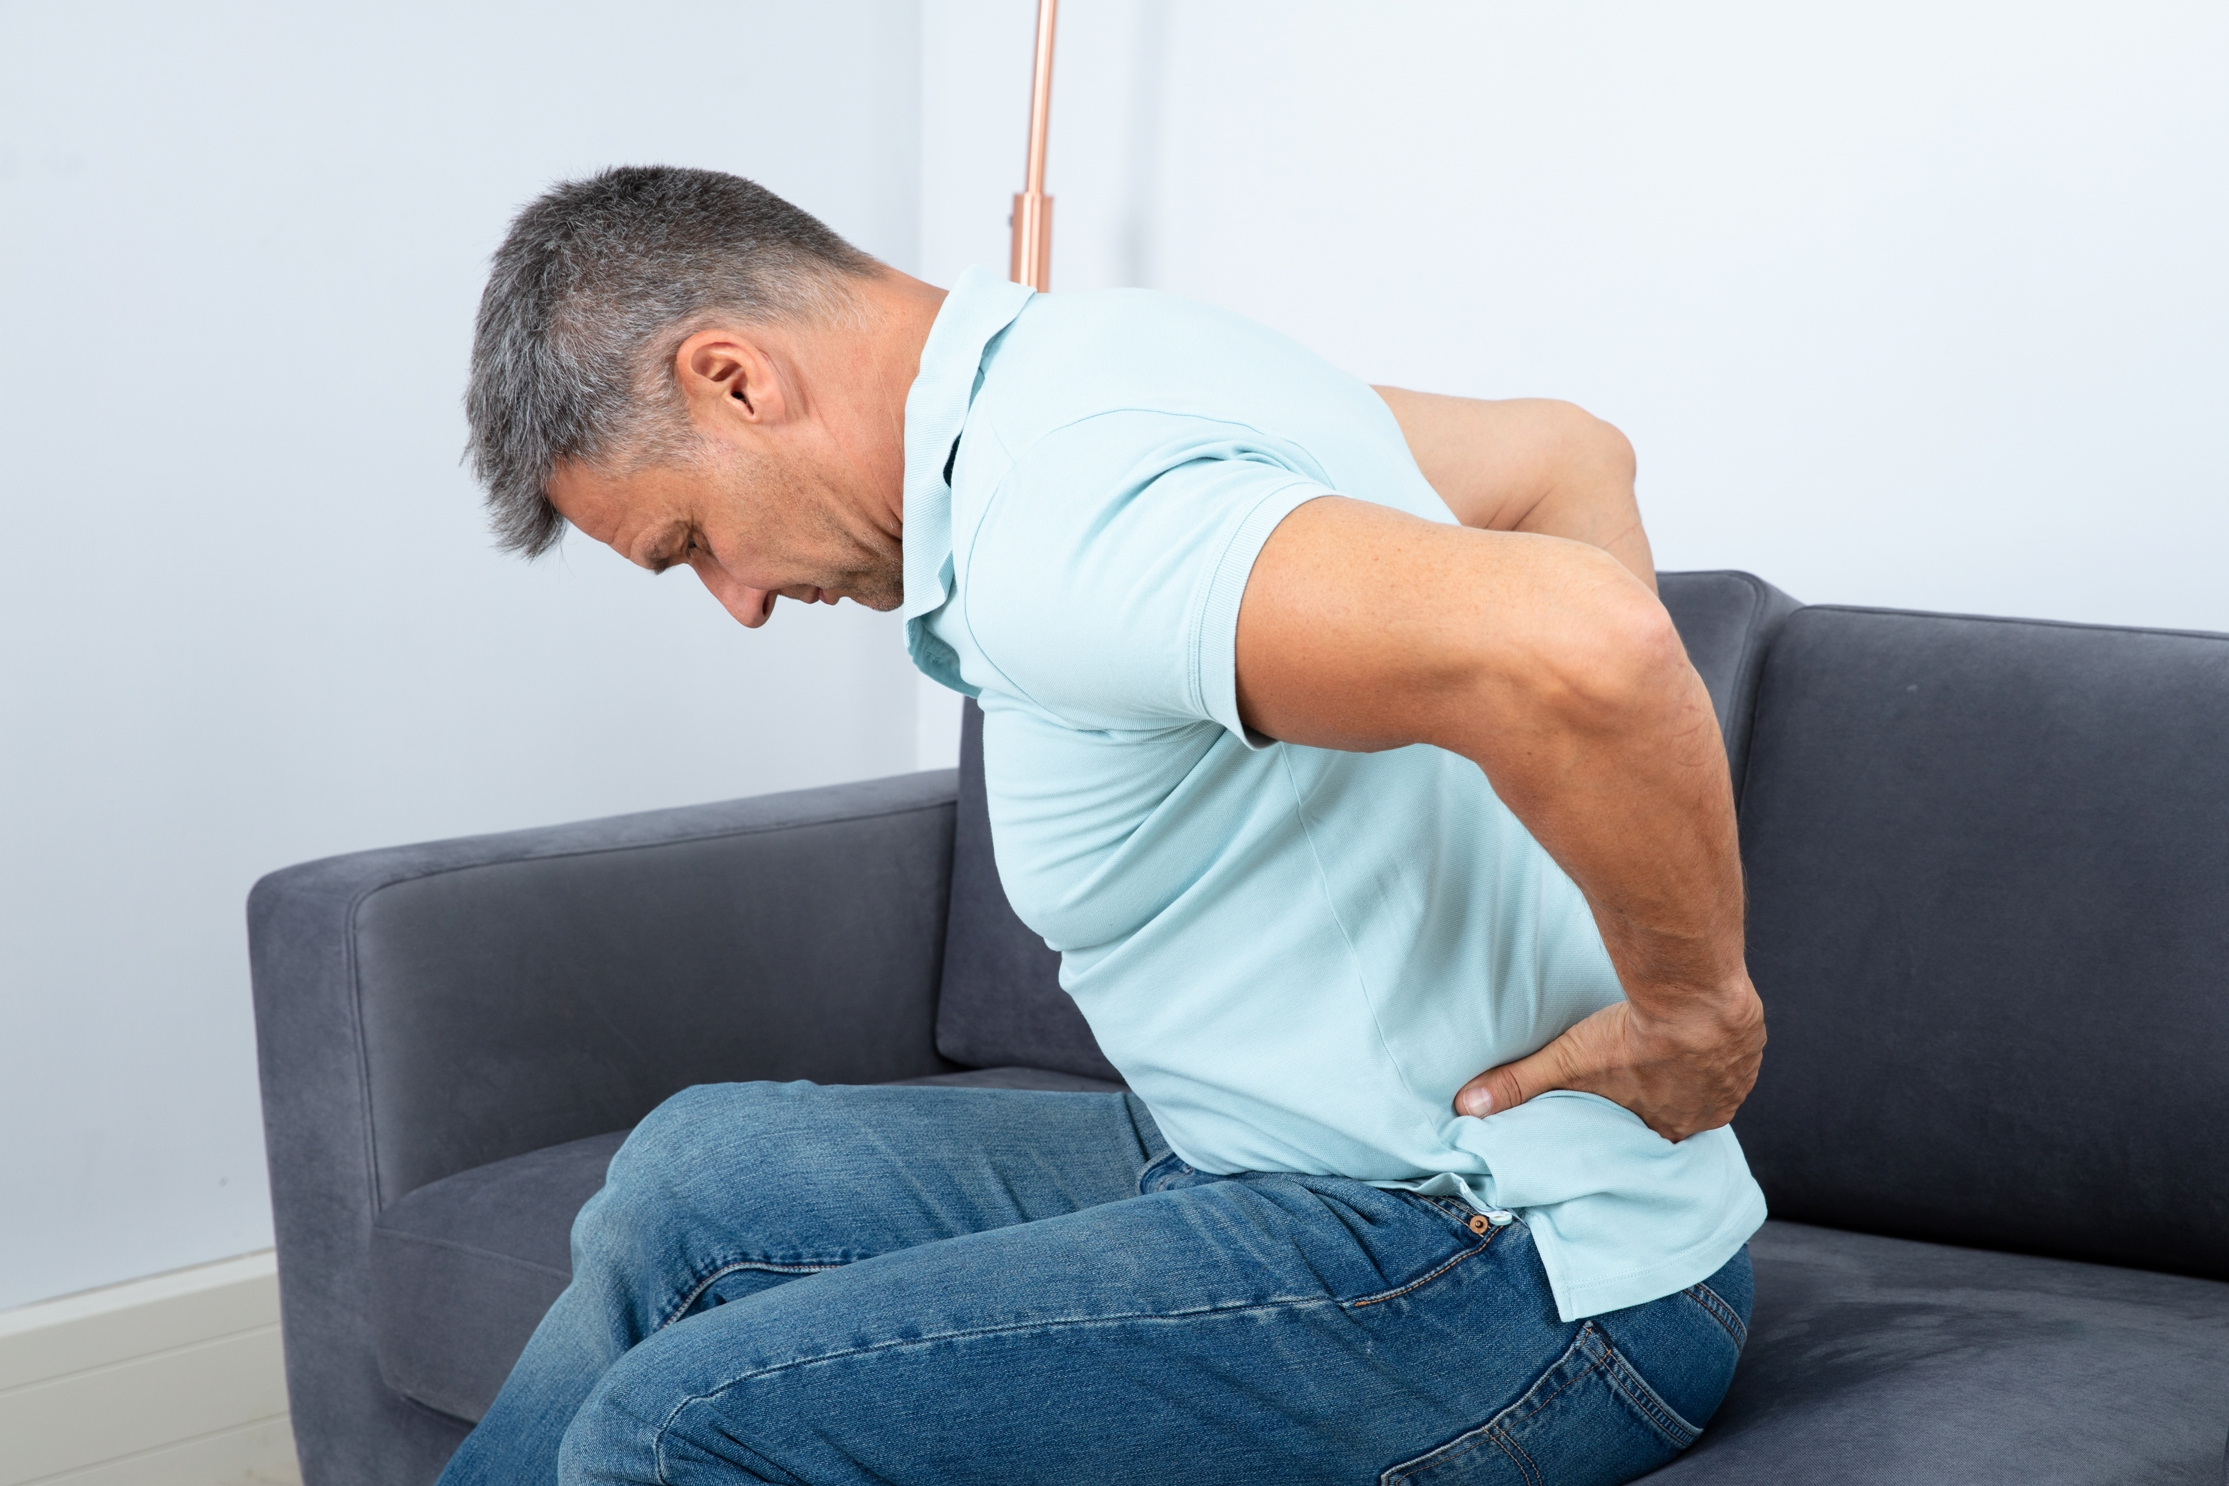 posture effecting your health back pain